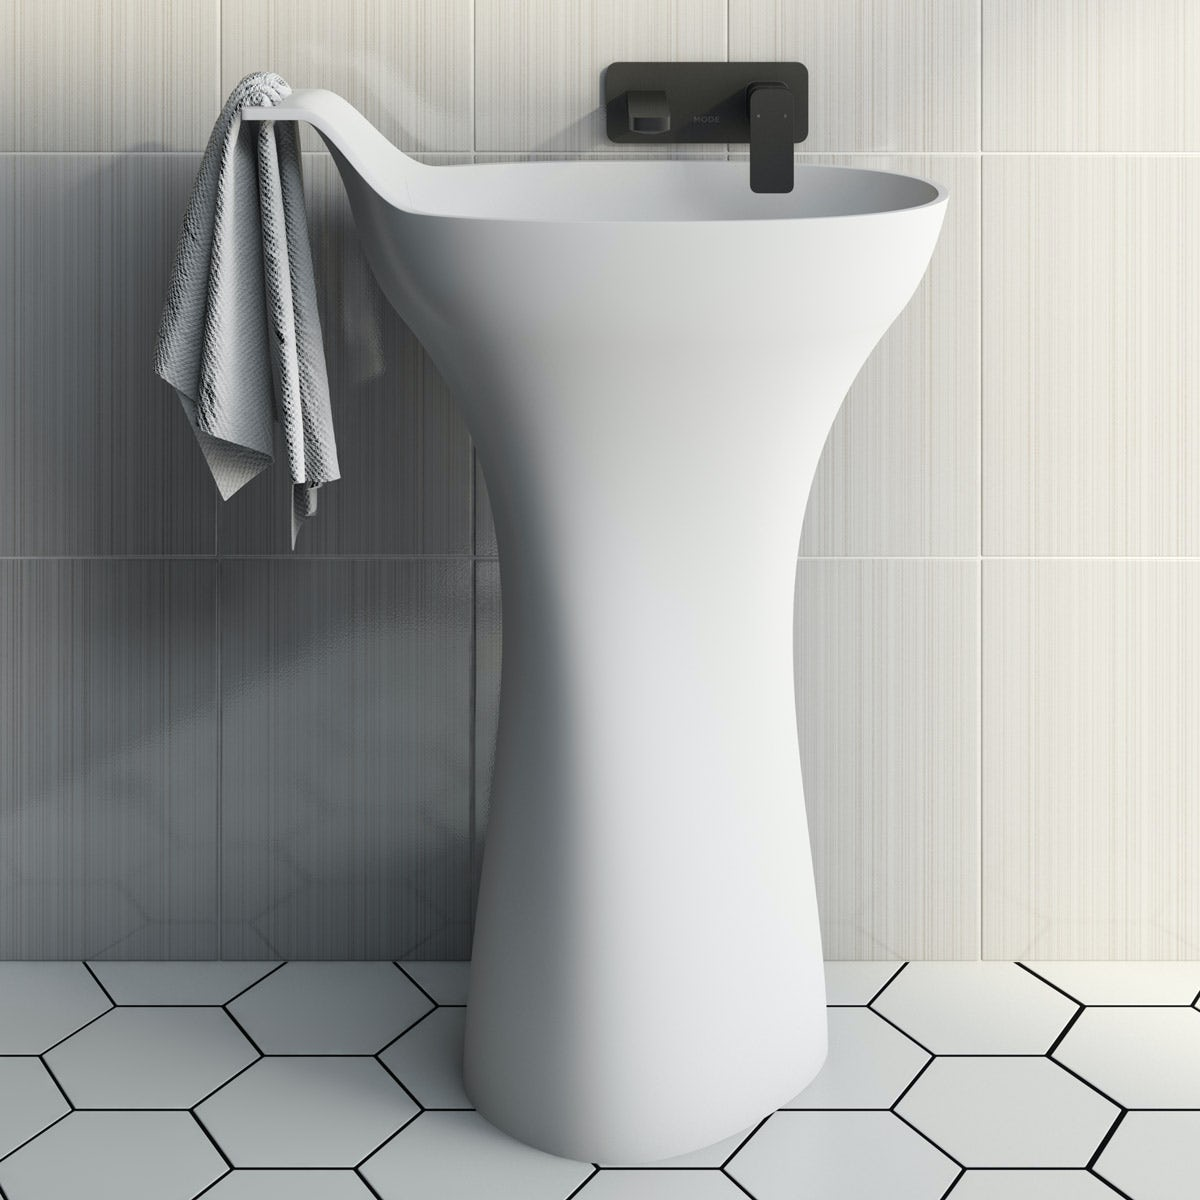 Mode Barocci solid surface freestanding basin with waste